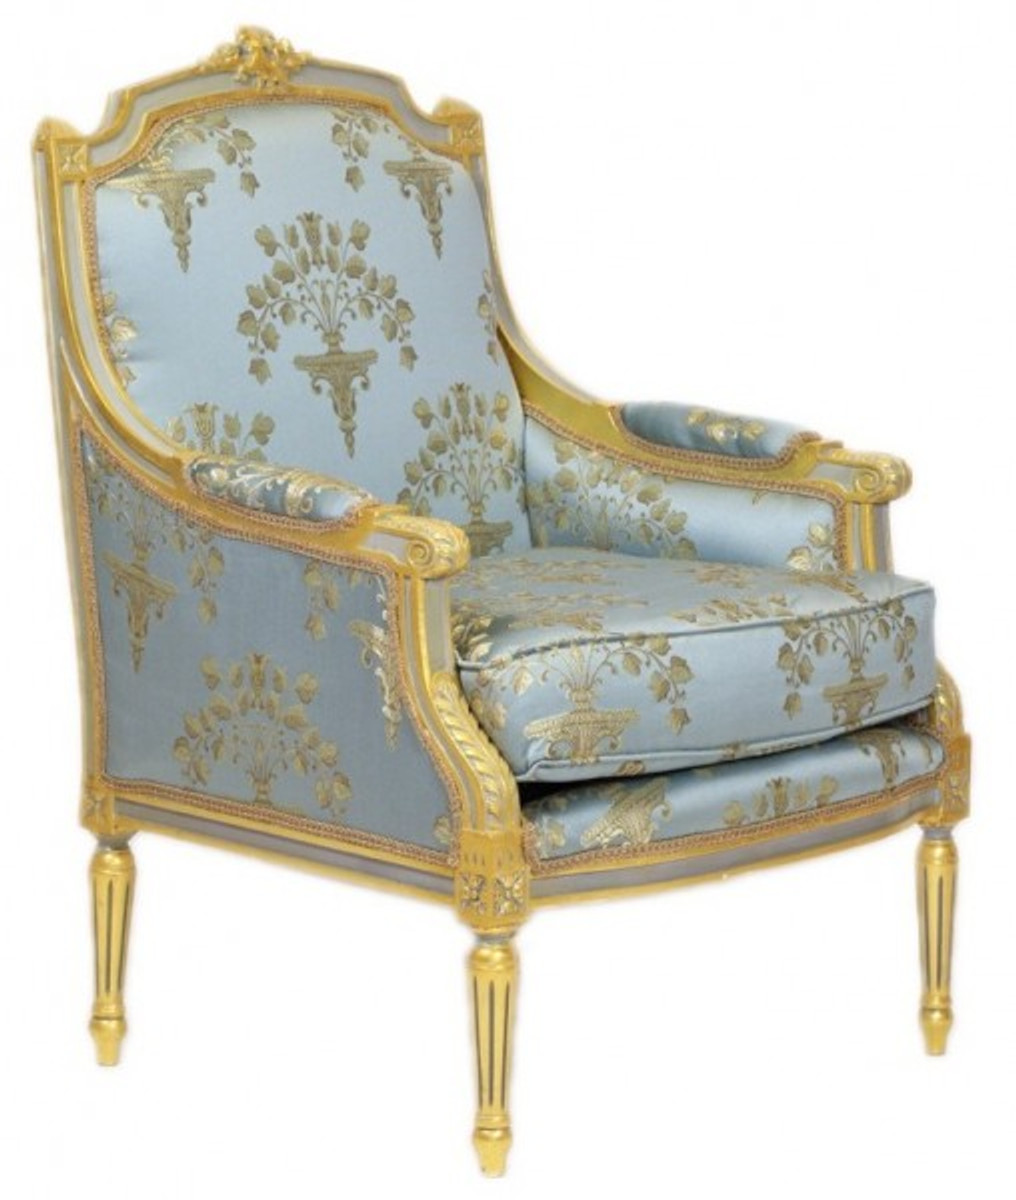 Casa padrino barock lounge thron sessel empire blau grau for Sessel ohren